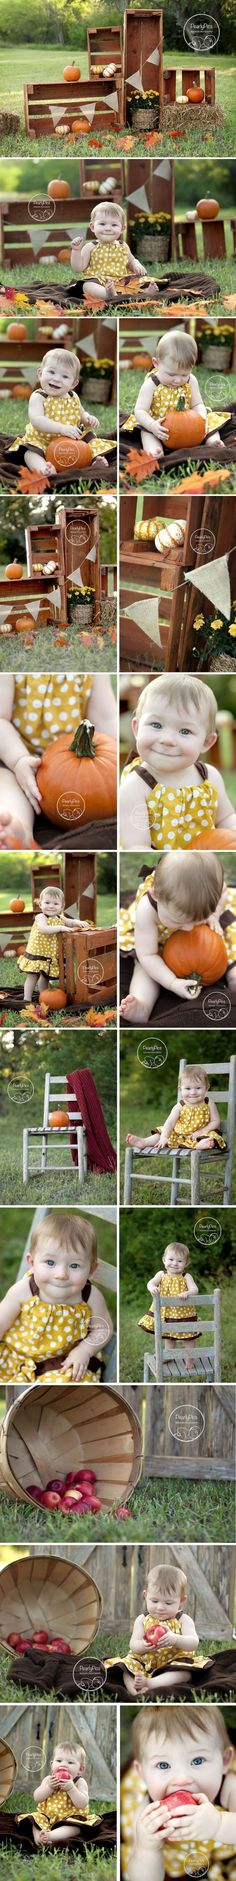 Fall mini session - this is adorable by Tracyyoung2014